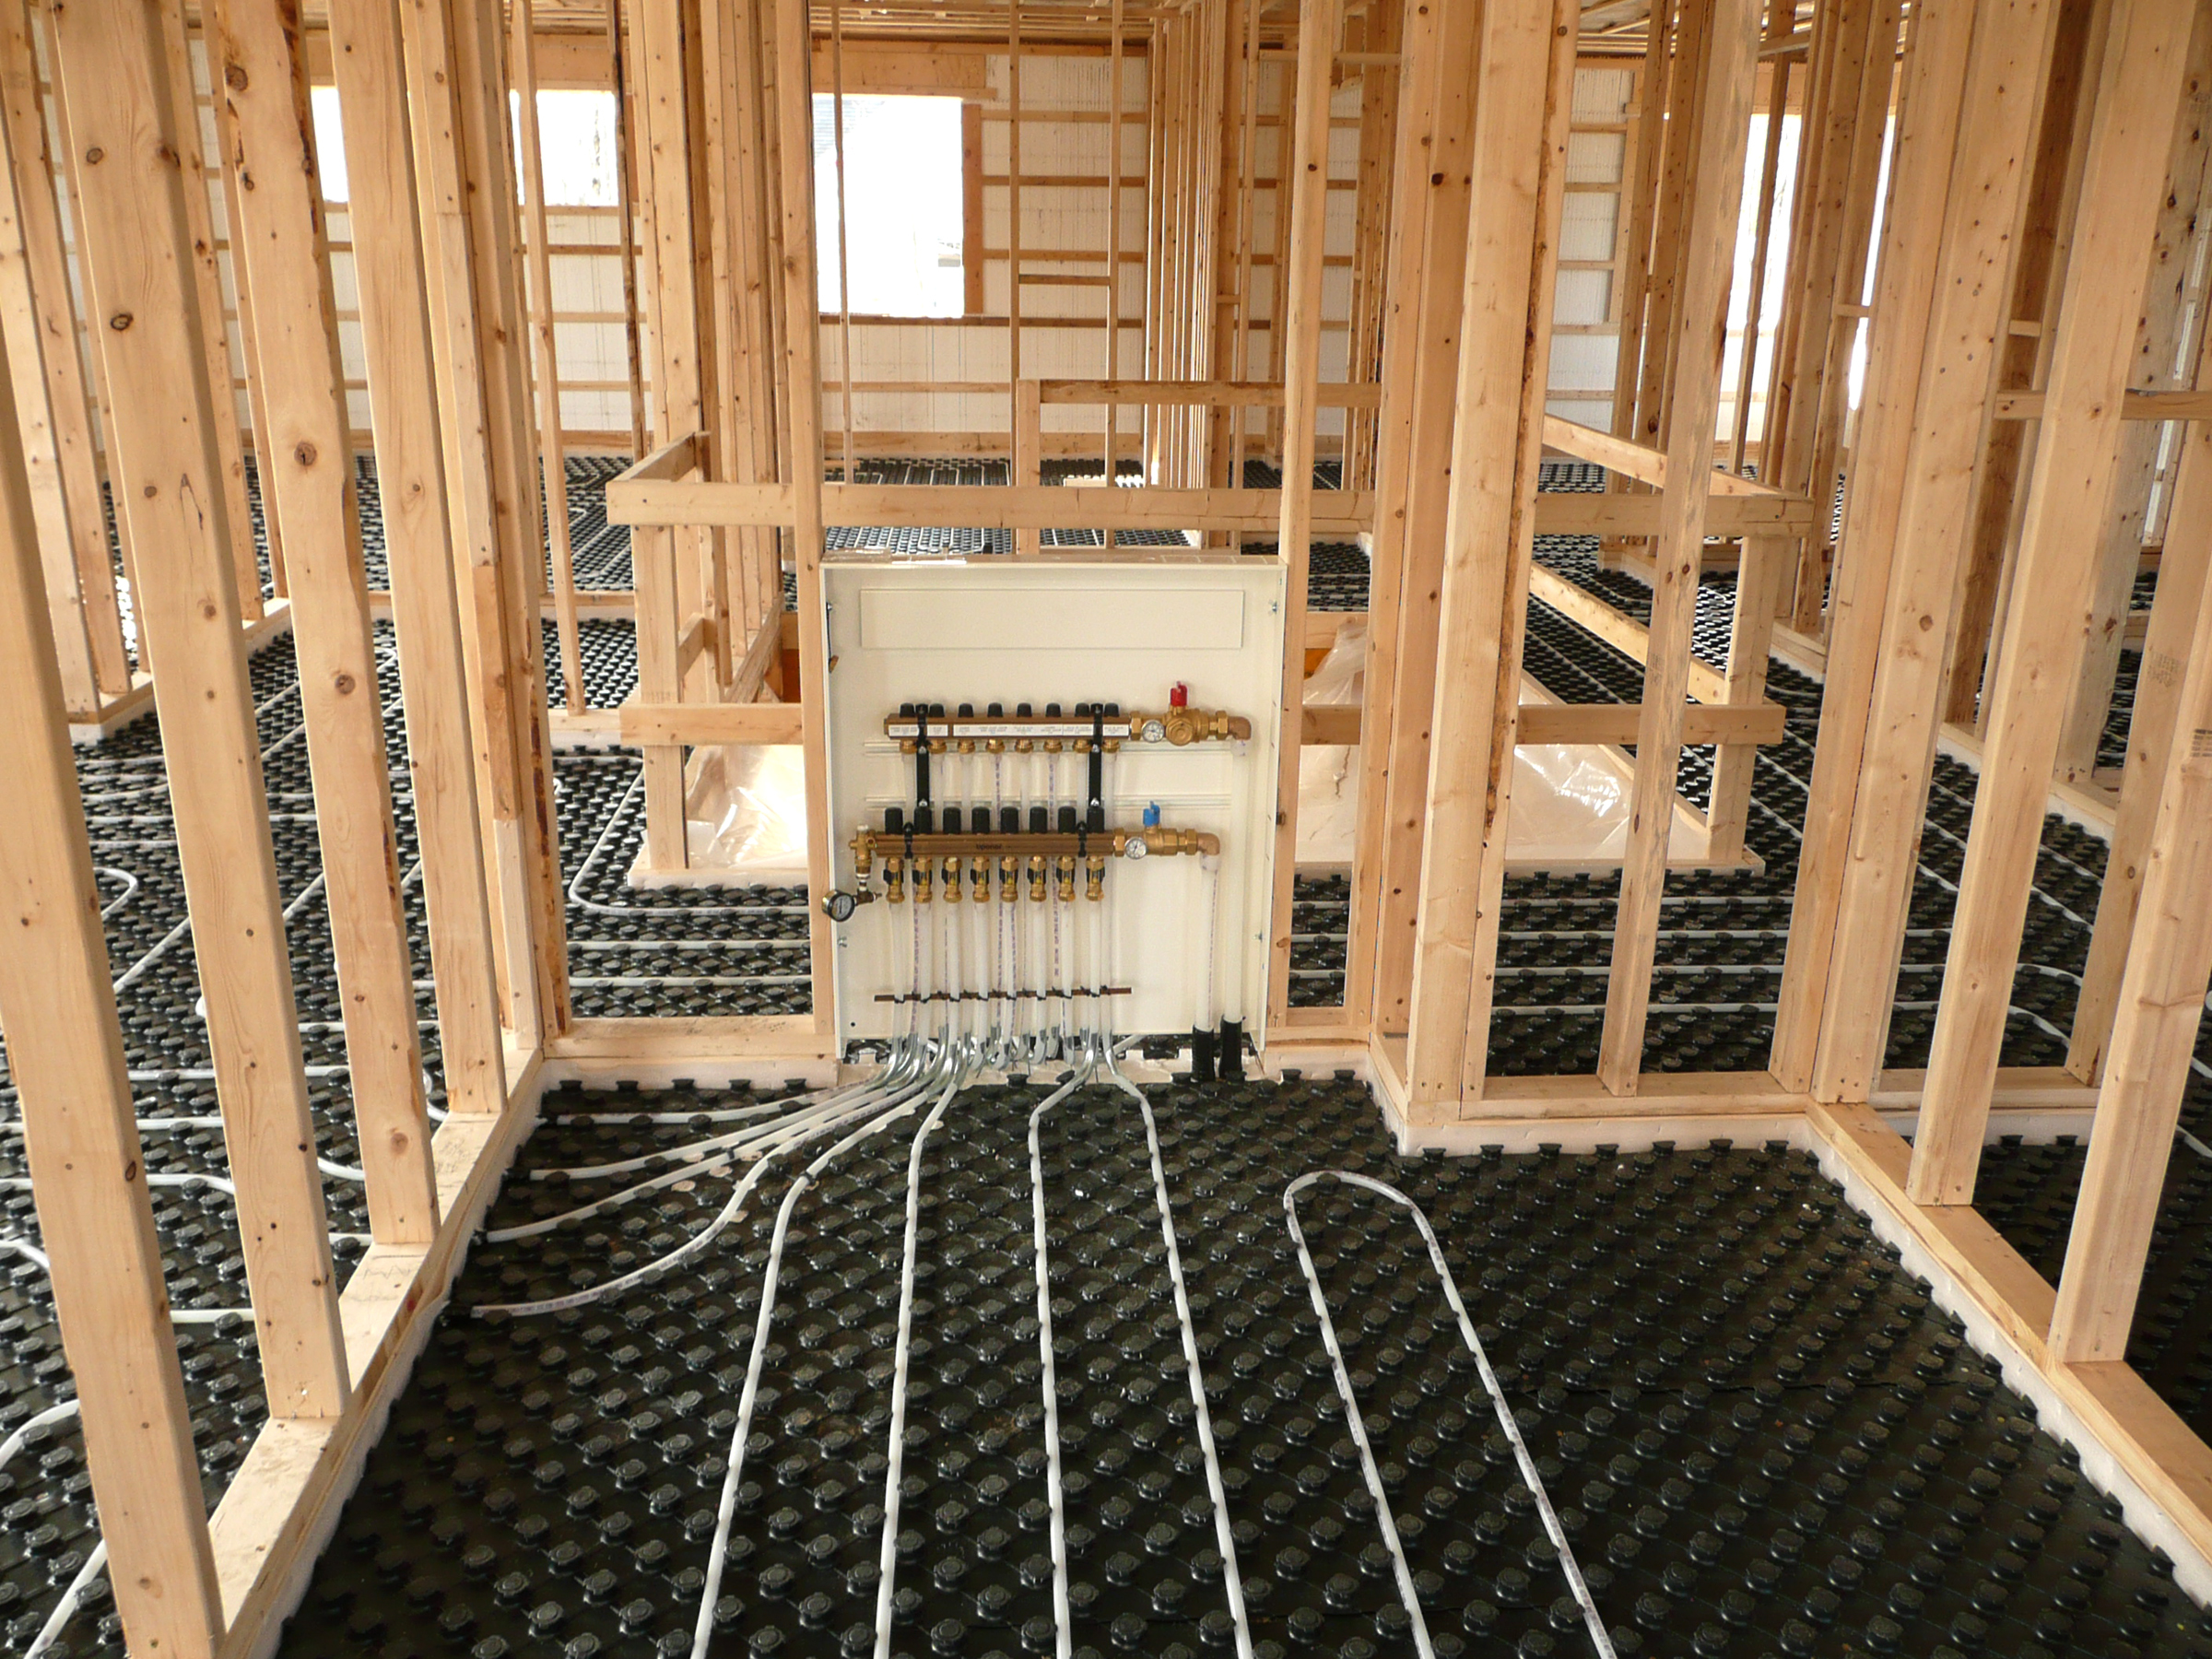 A radiant system install using PEX pipe.